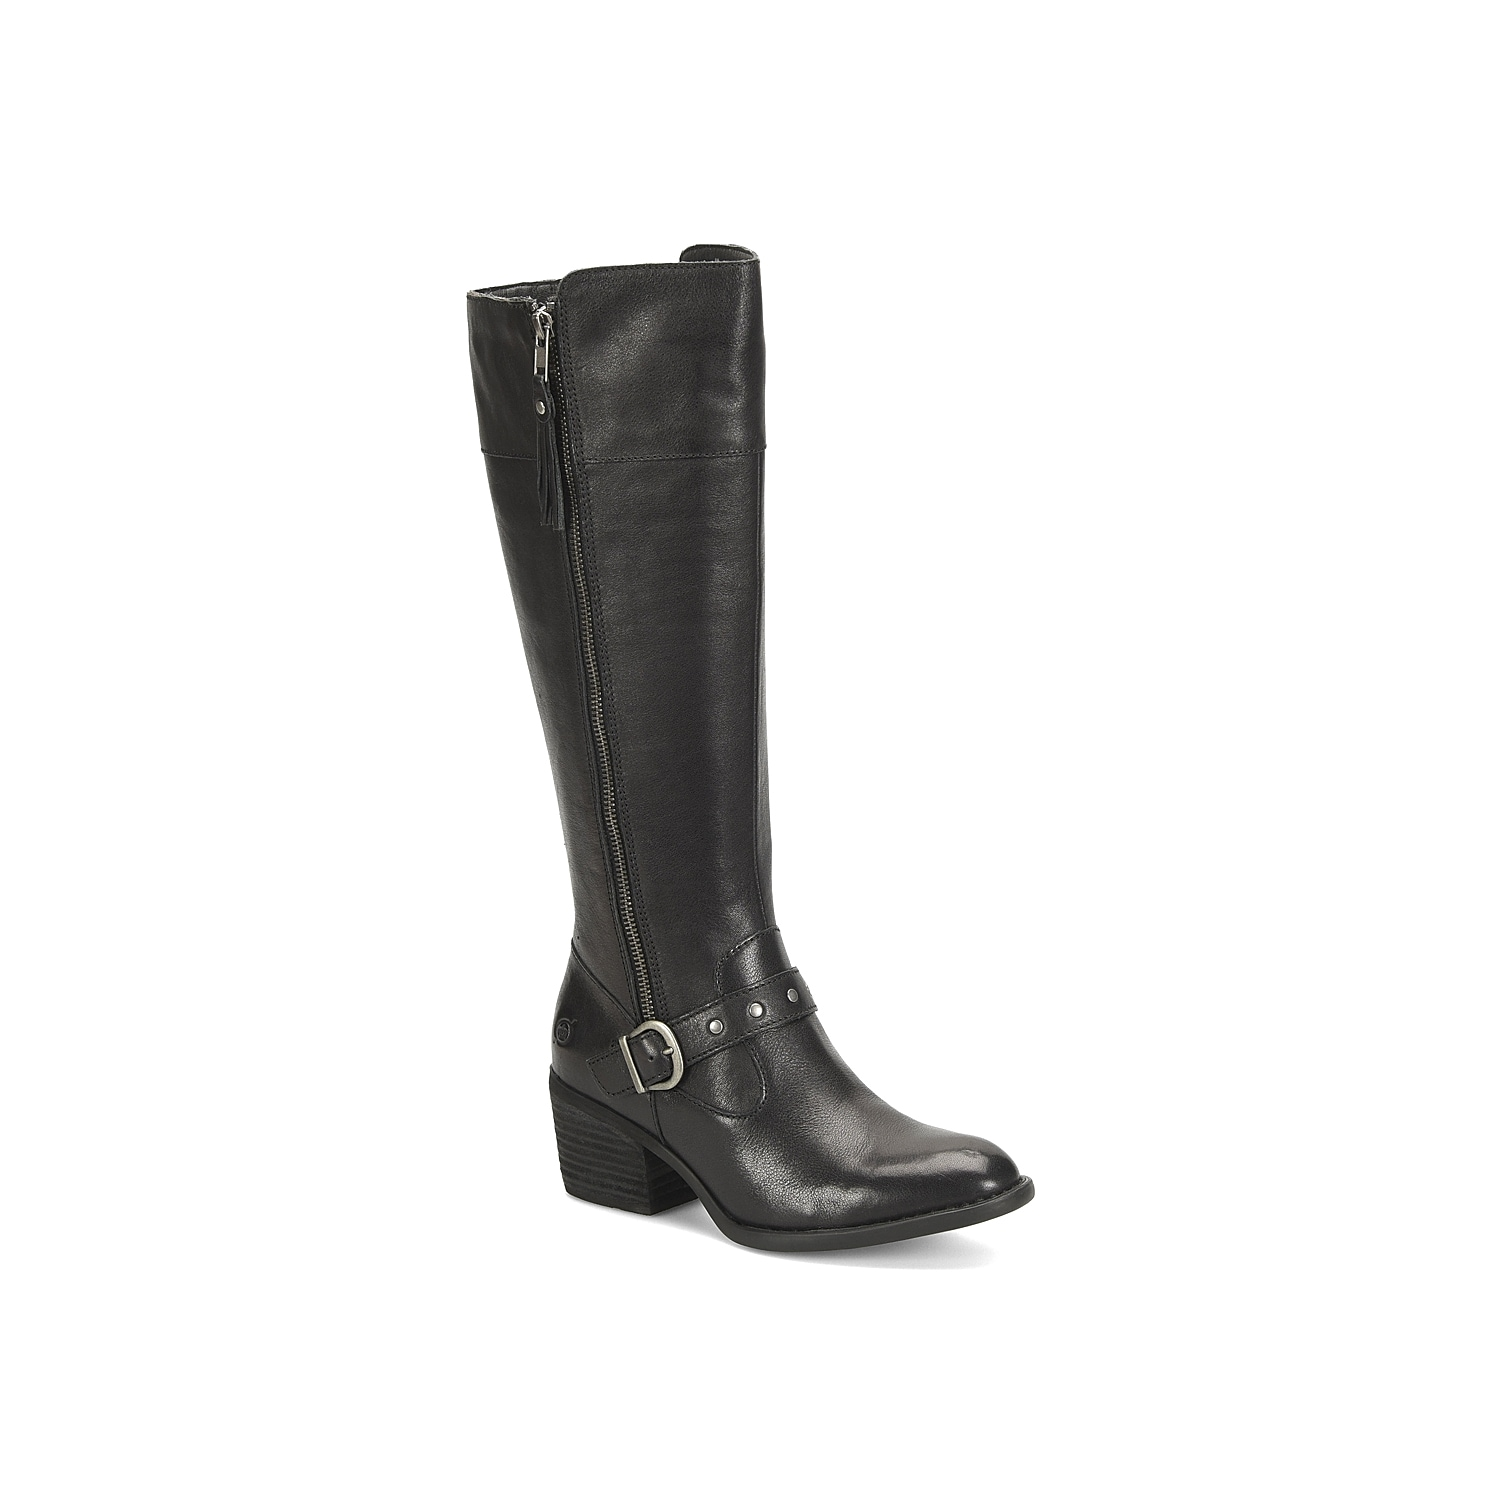 Show off classic style with any cool weather look with the Alize riding boot from Born. The leather upper features natural distressing and a studded strap for a touch of edge.Click here for Boot Measuring Guide.